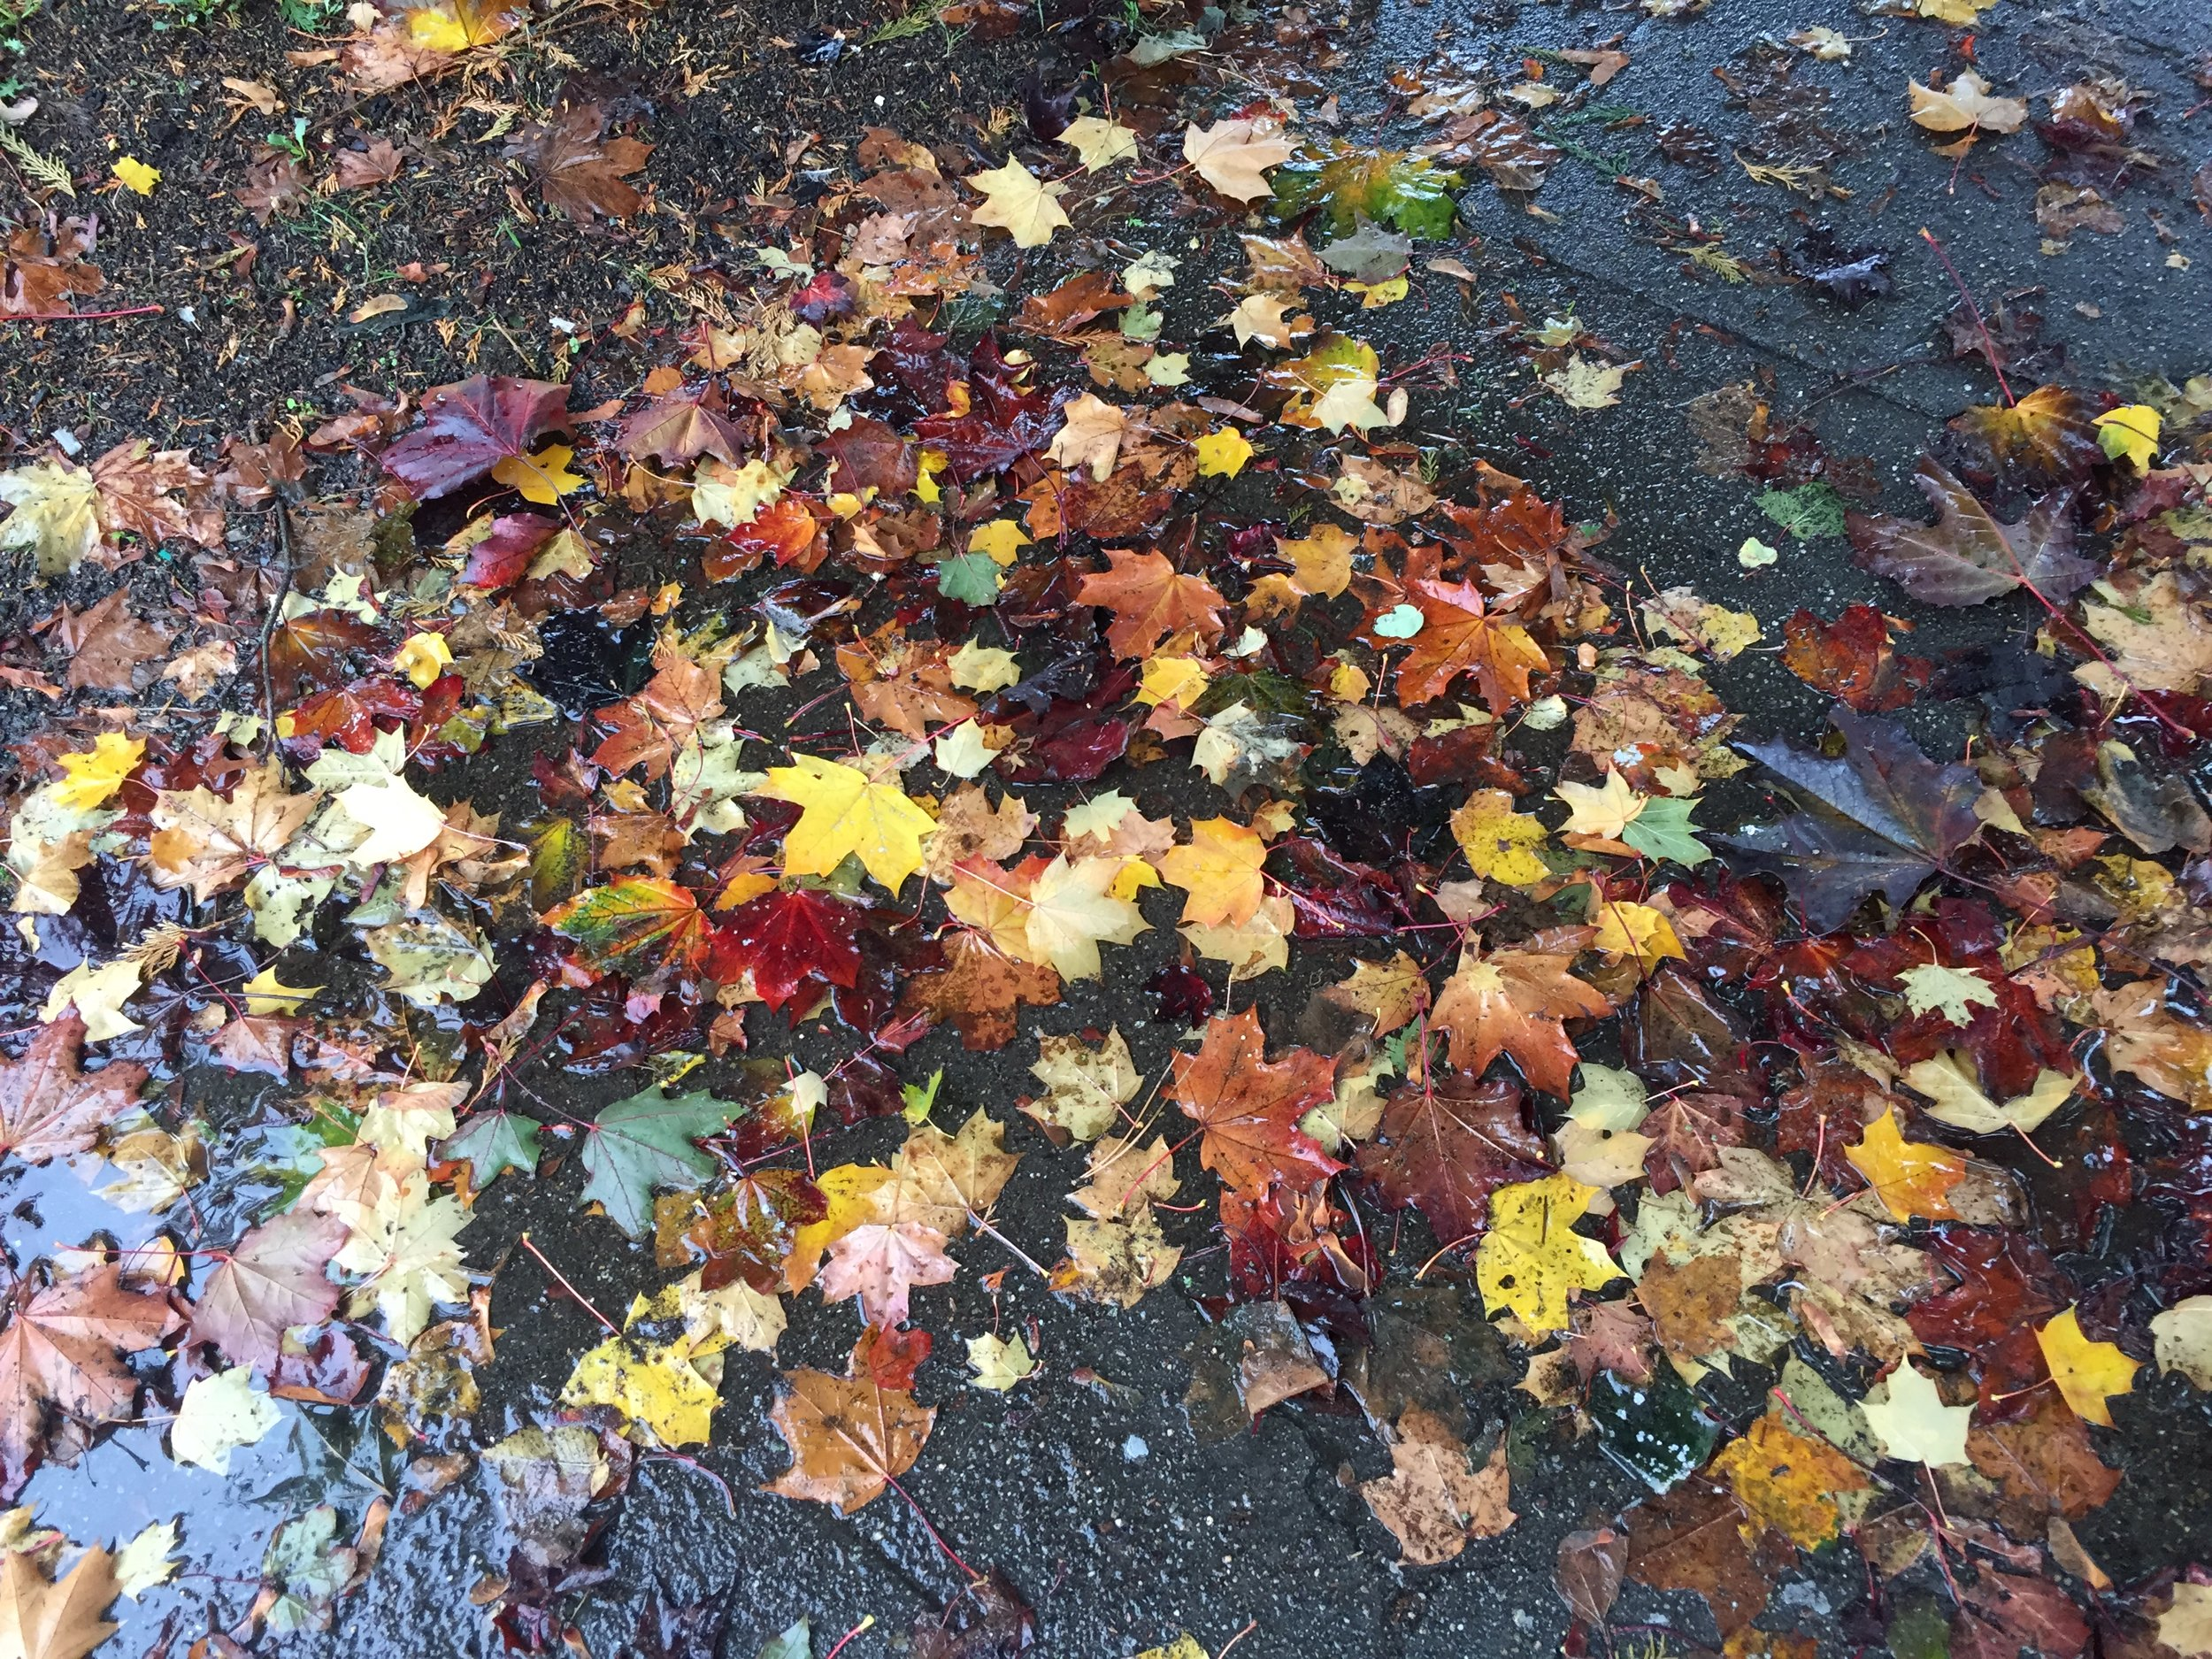 Leaves on my walk around the block. Tiny victories.